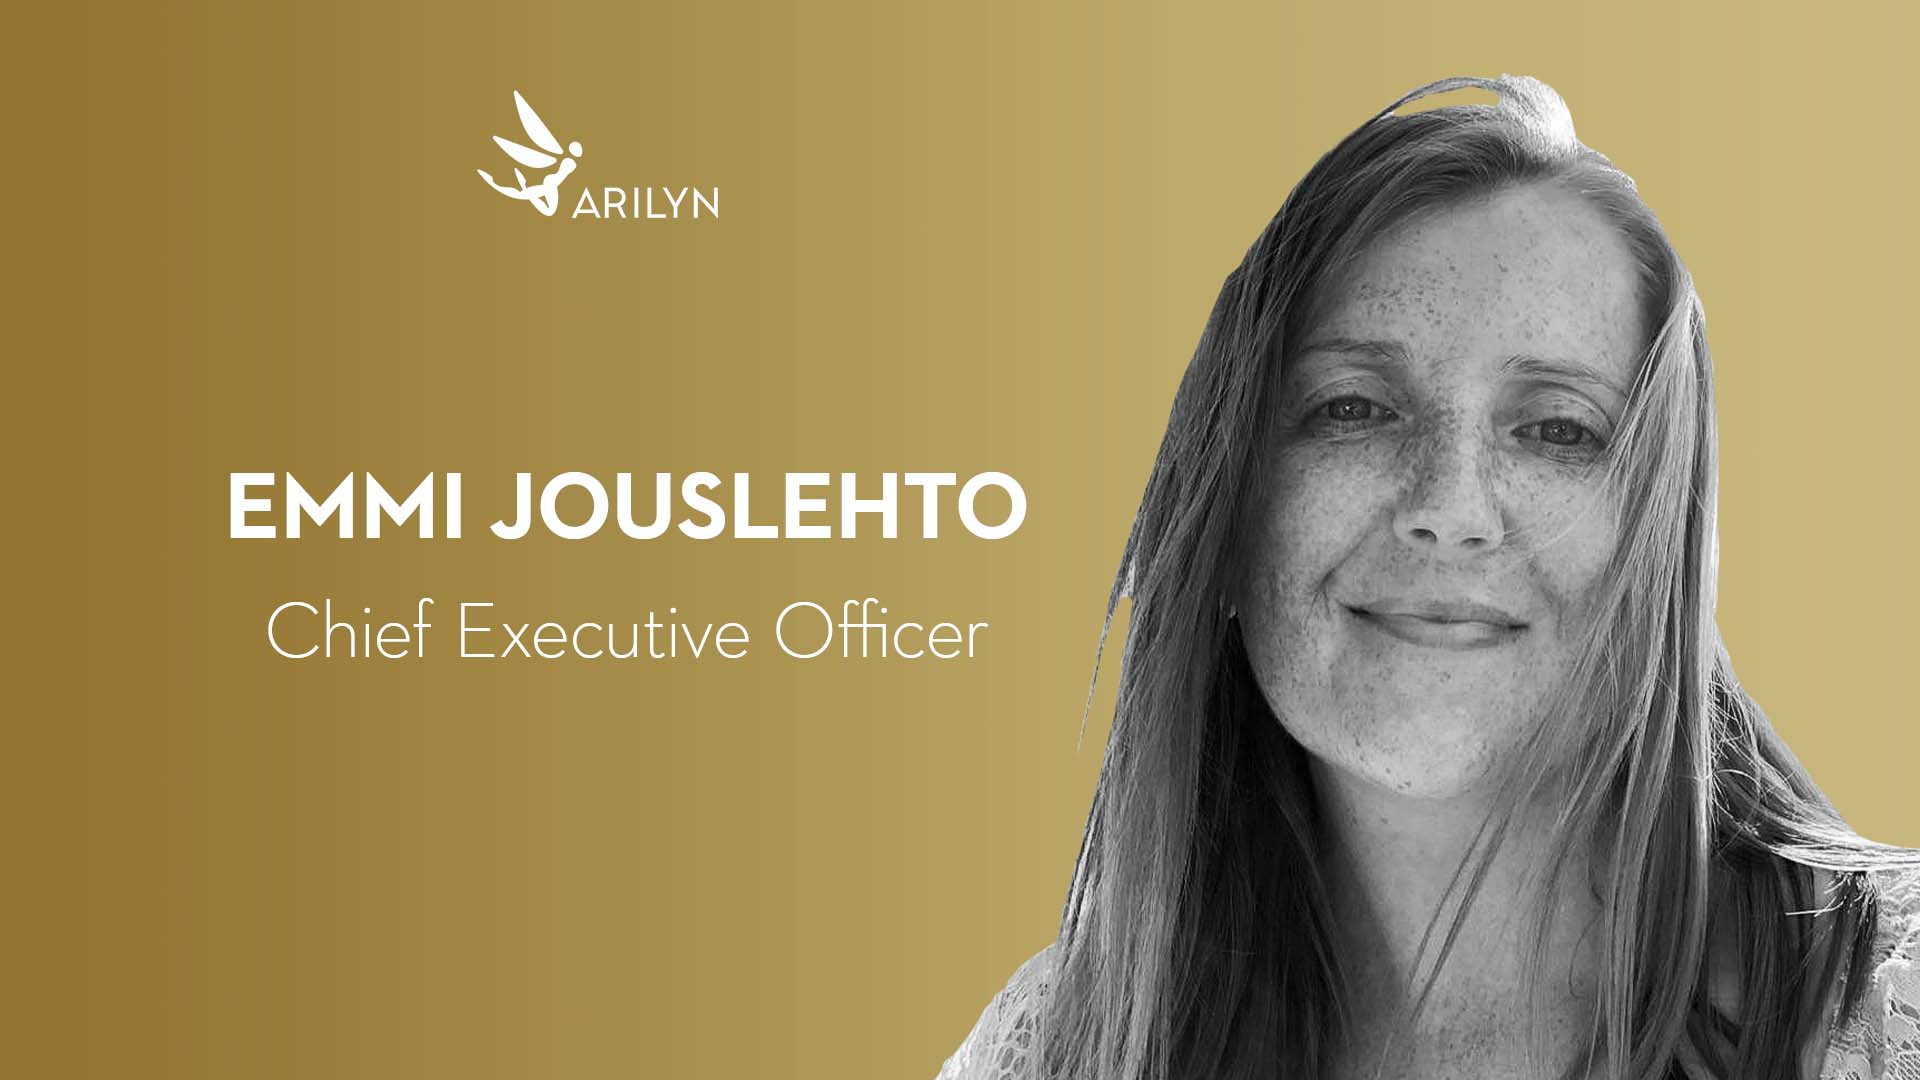 Get to know Arilyn–Emmi, CEO